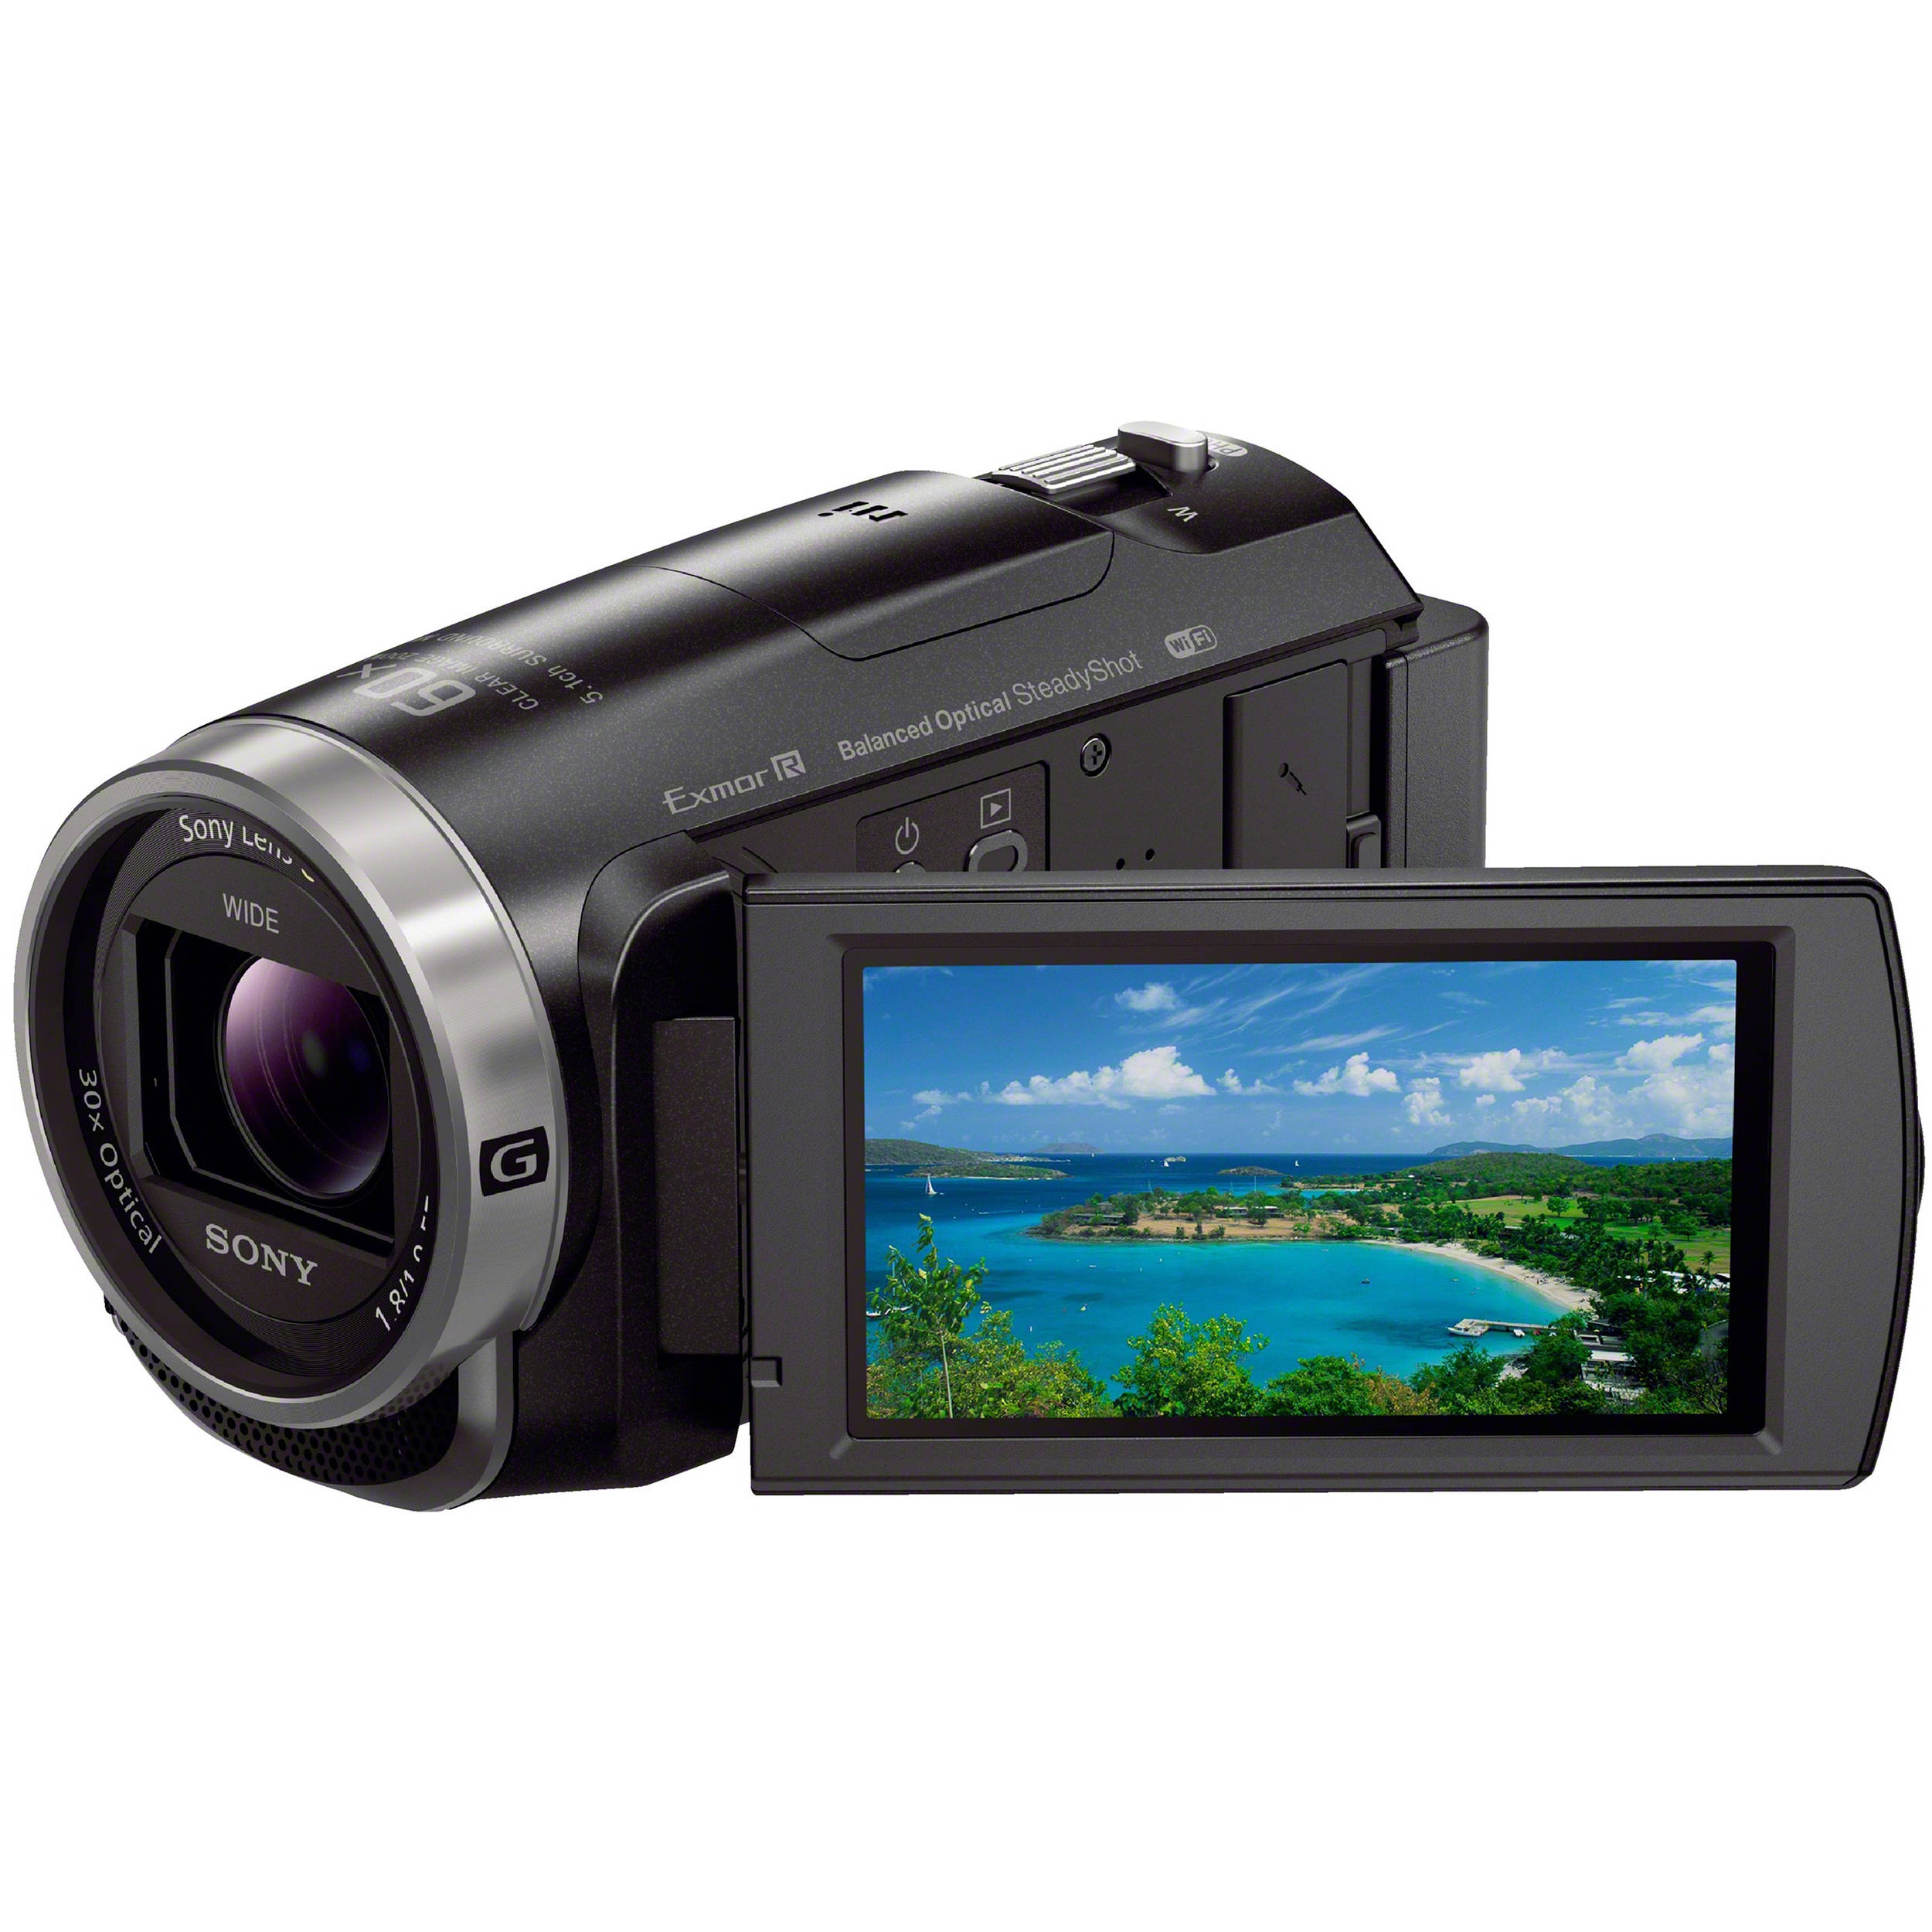 SONY DCR-L1 CAMCORDER USB DRIVER